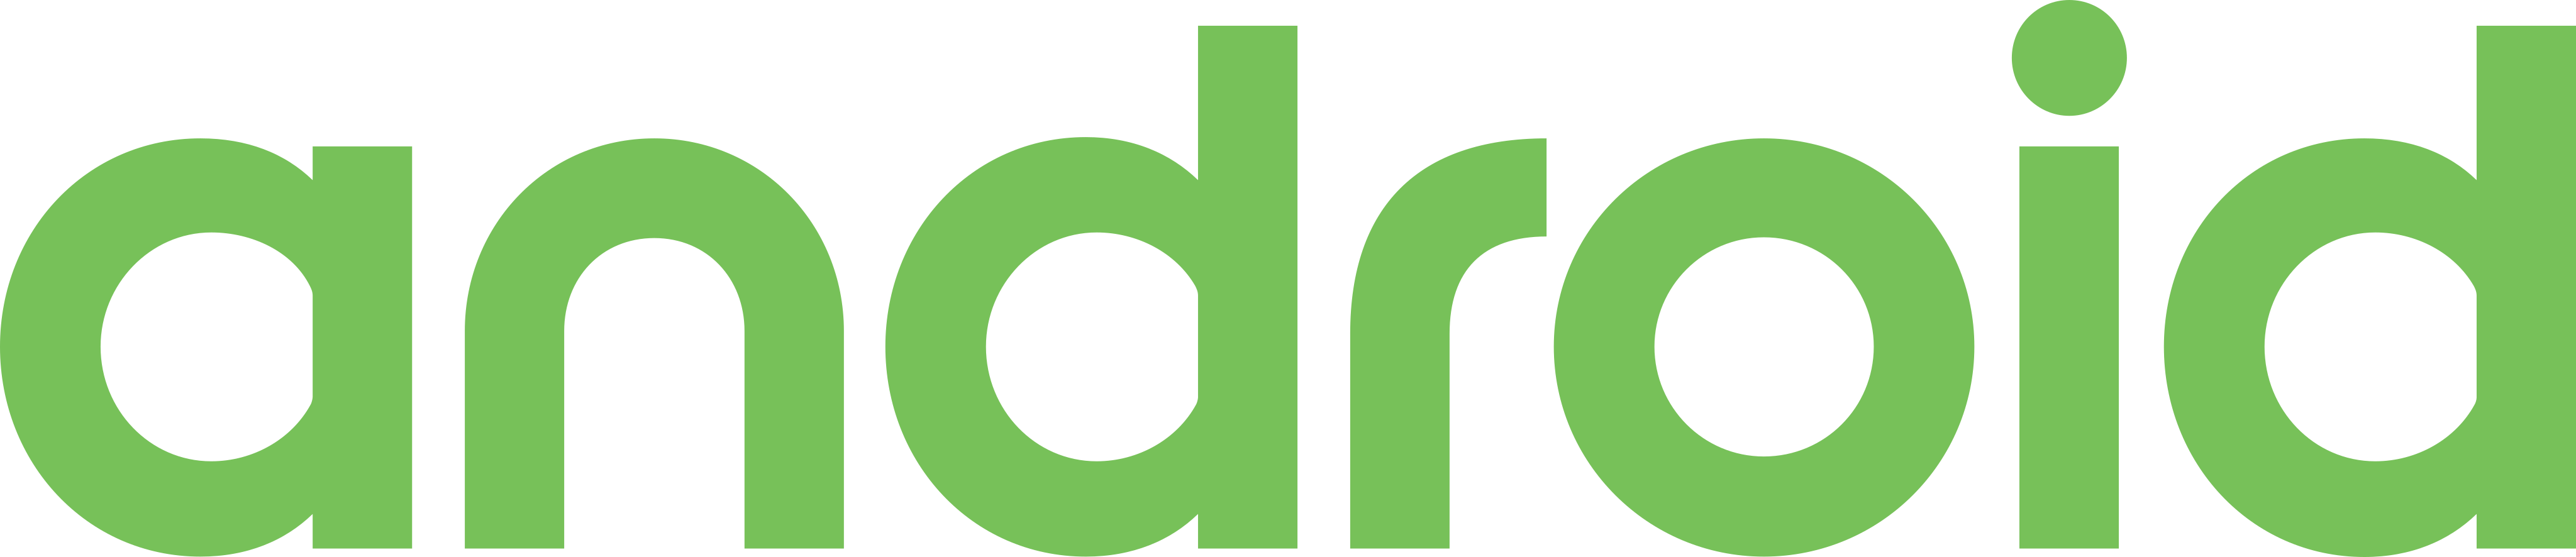 android logo 14 - Android Logo